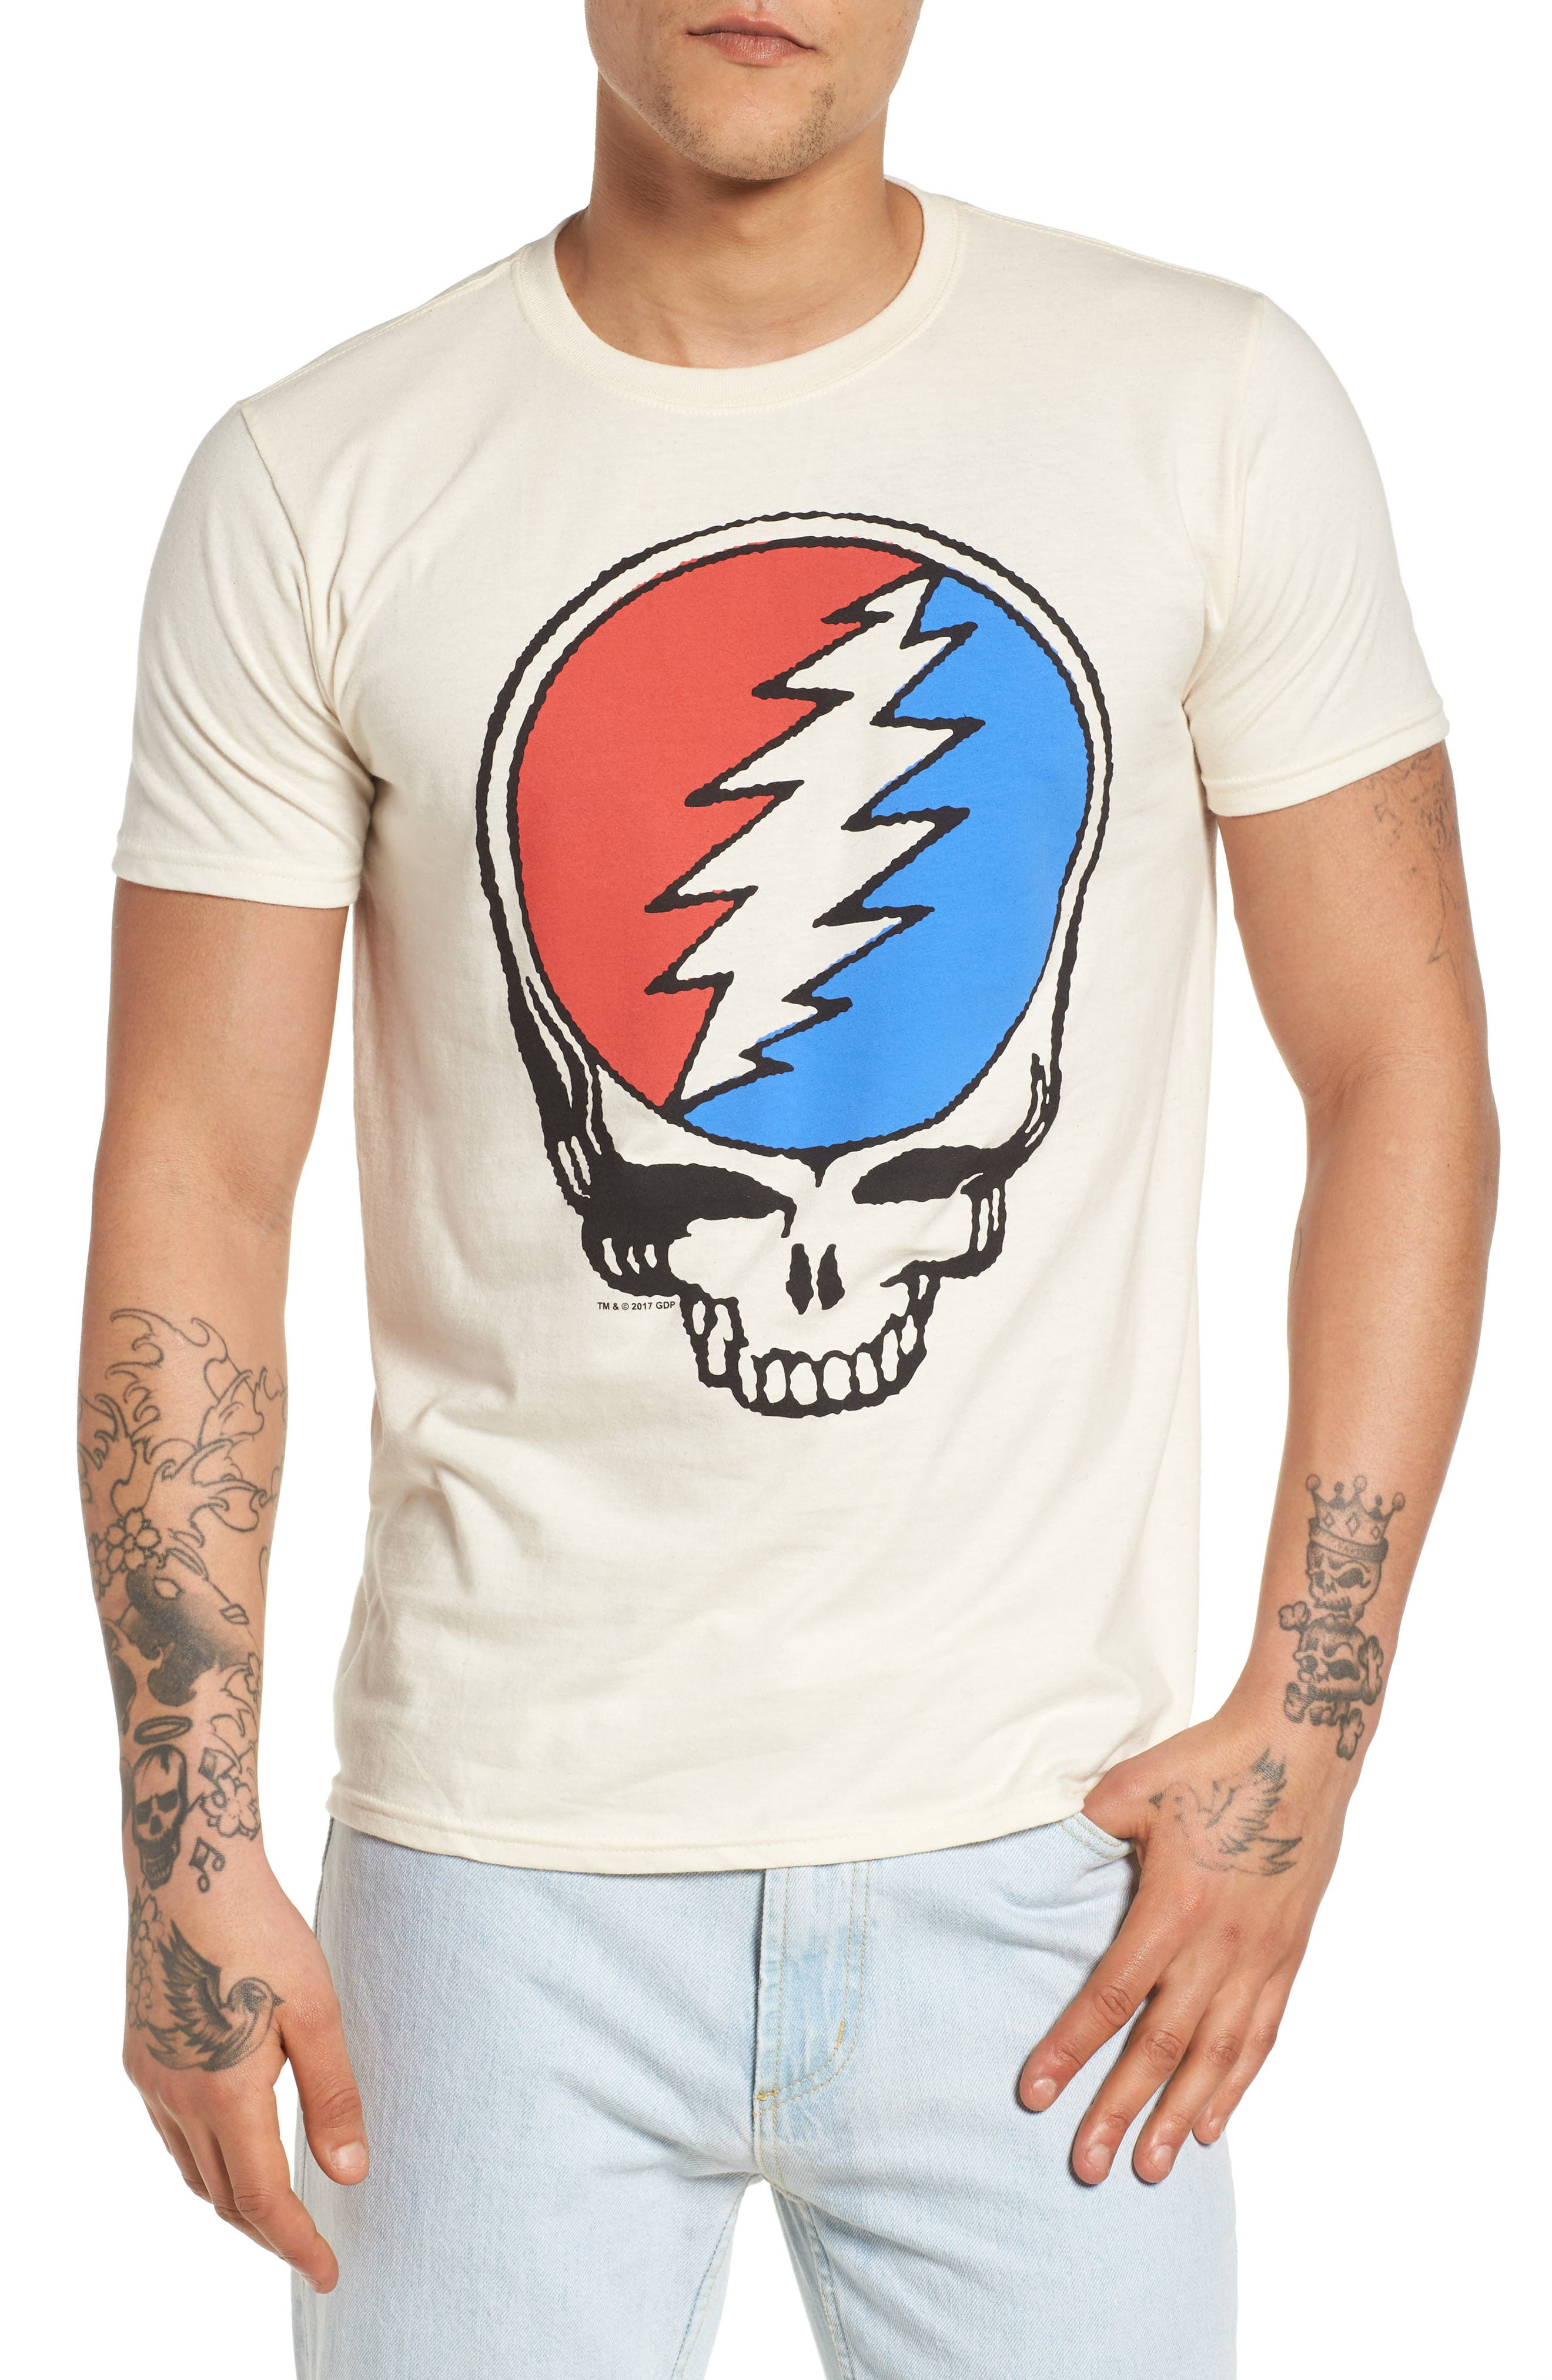 The Rail Grateful Skull T-Shirt